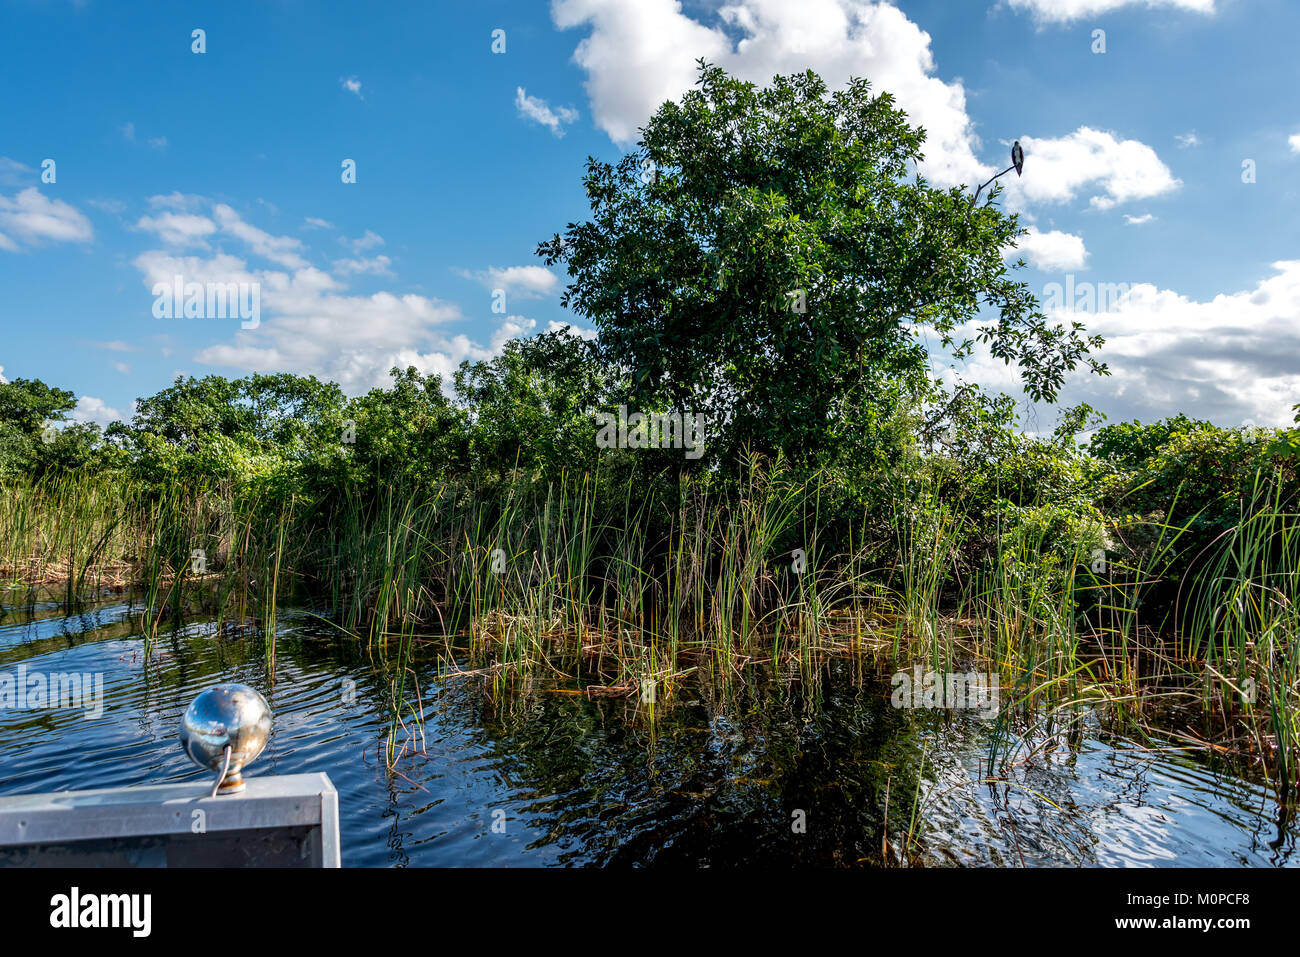 Florida Everglades in Sawgrass Recreation Park view from an airboat of grass, an osprey bird sitting in the tree - Stock Image